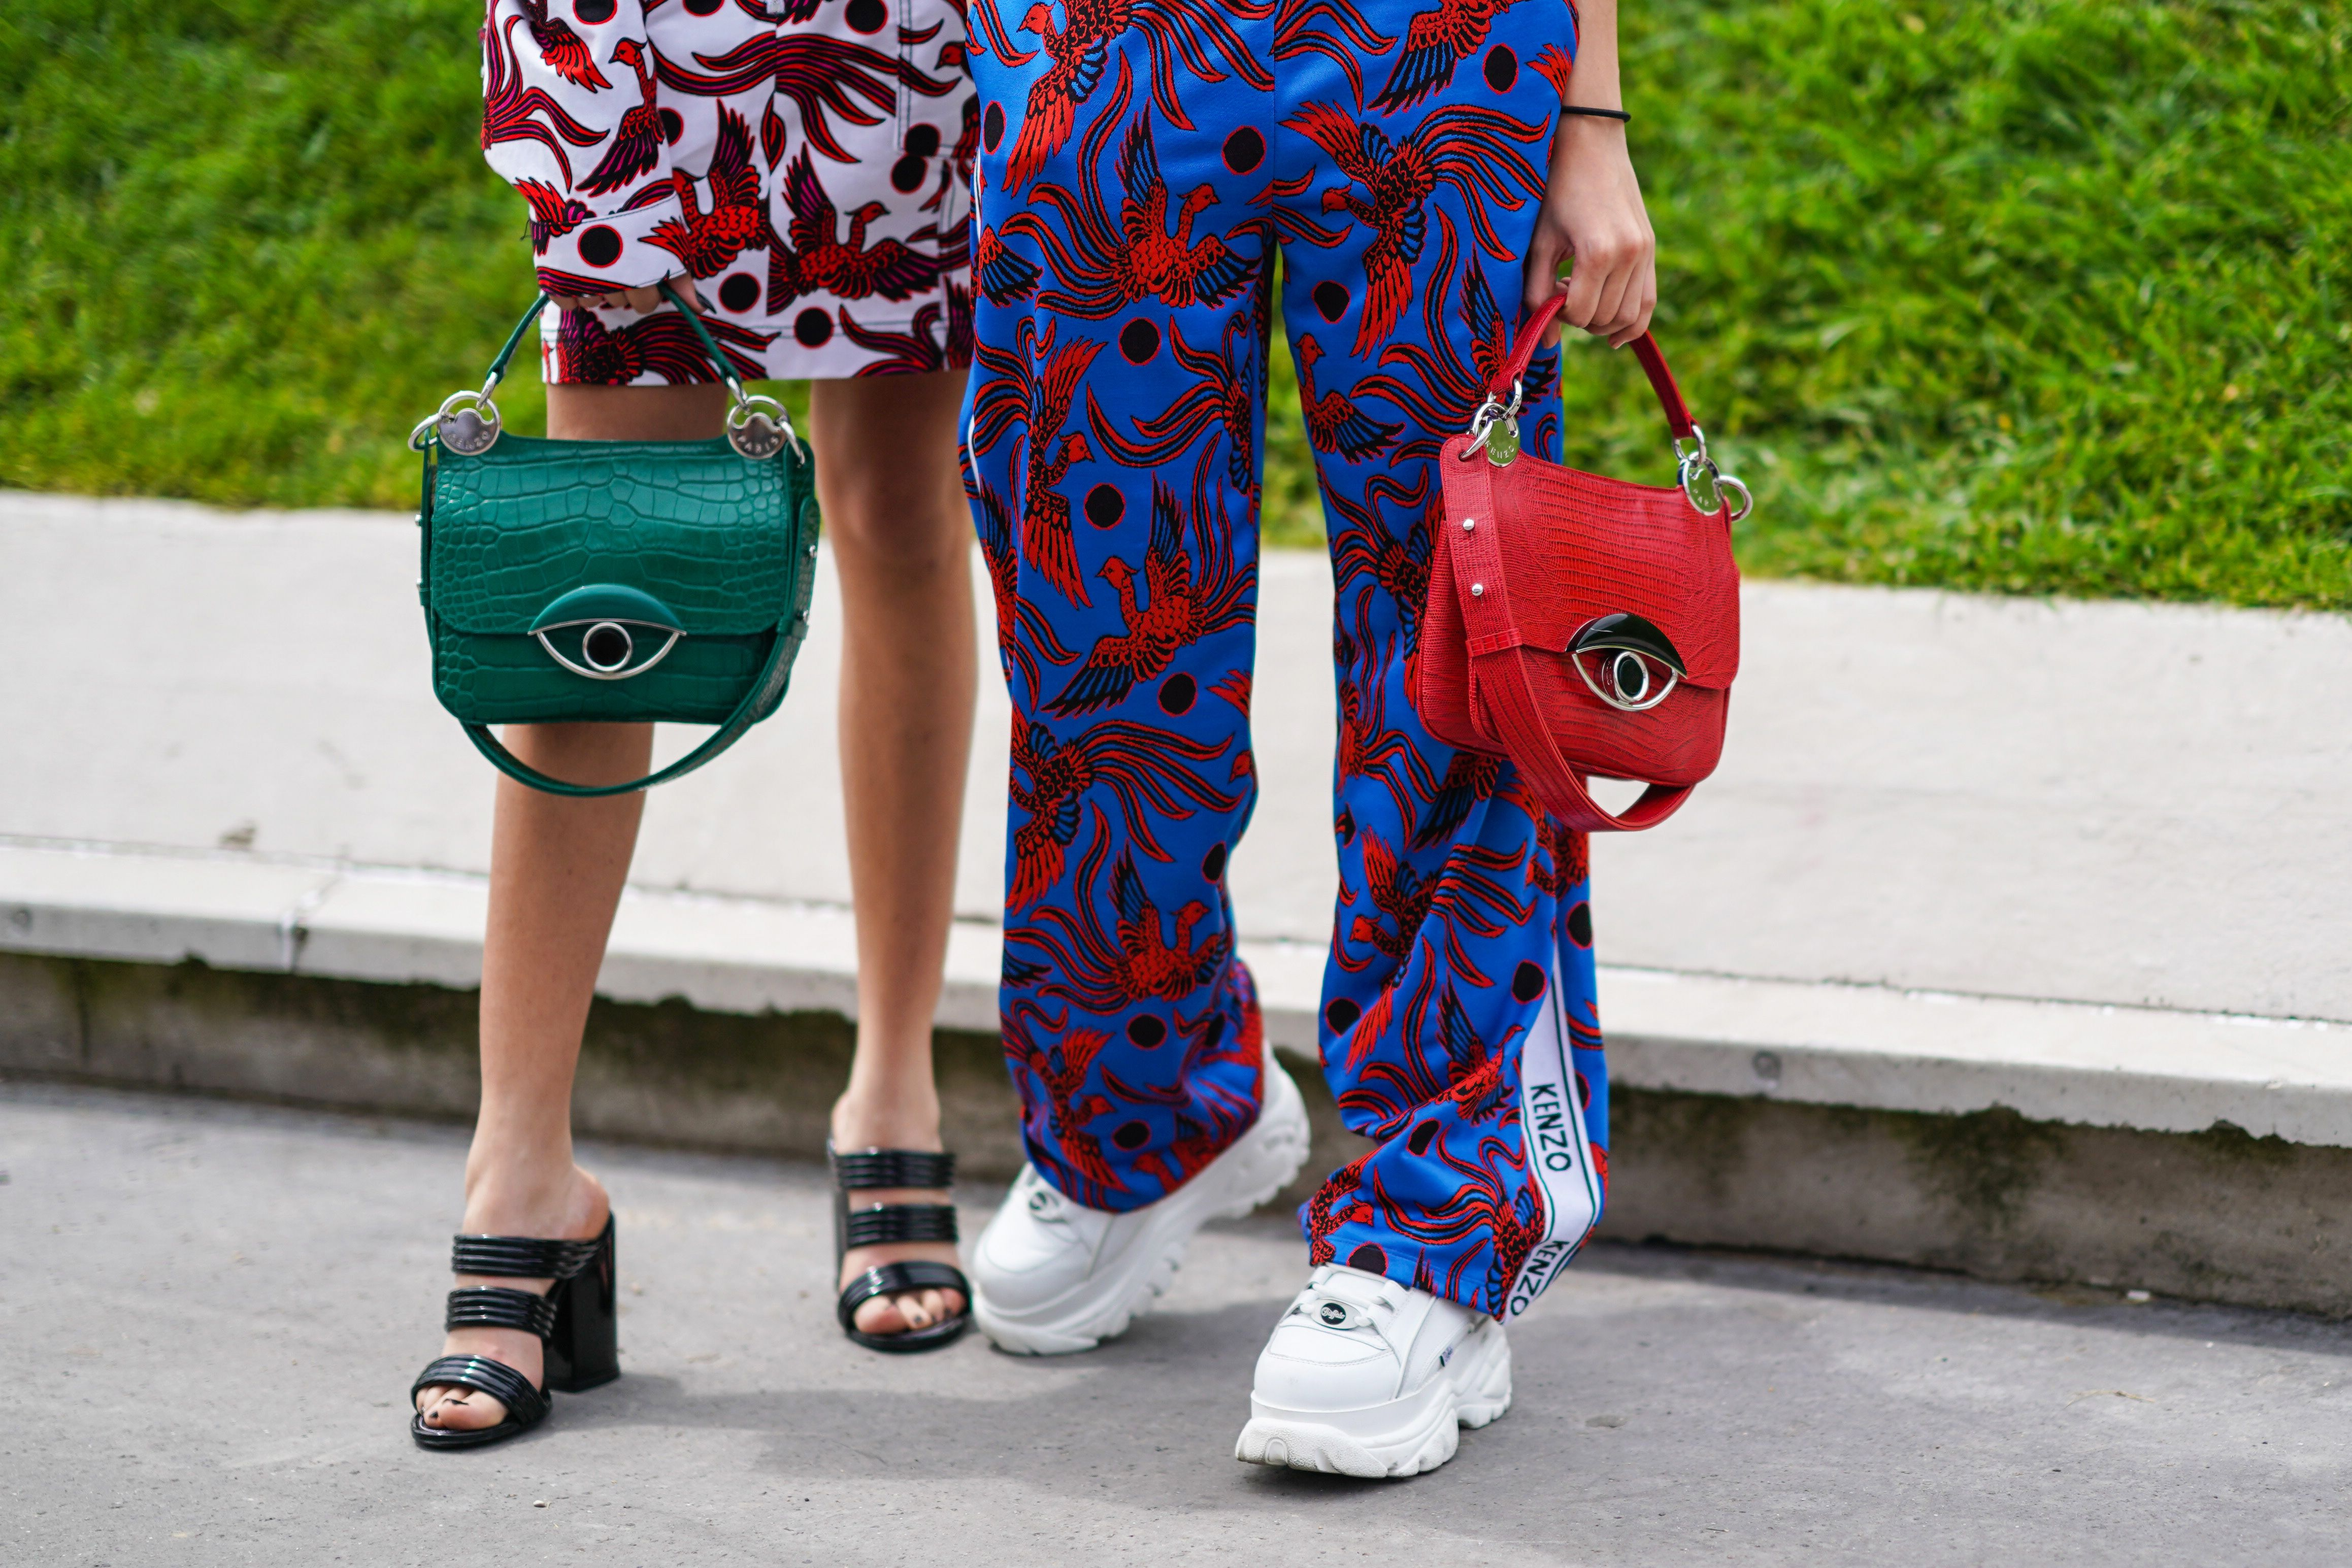 16 ELLE Editors On The Biggest Shoe Trends of Summer